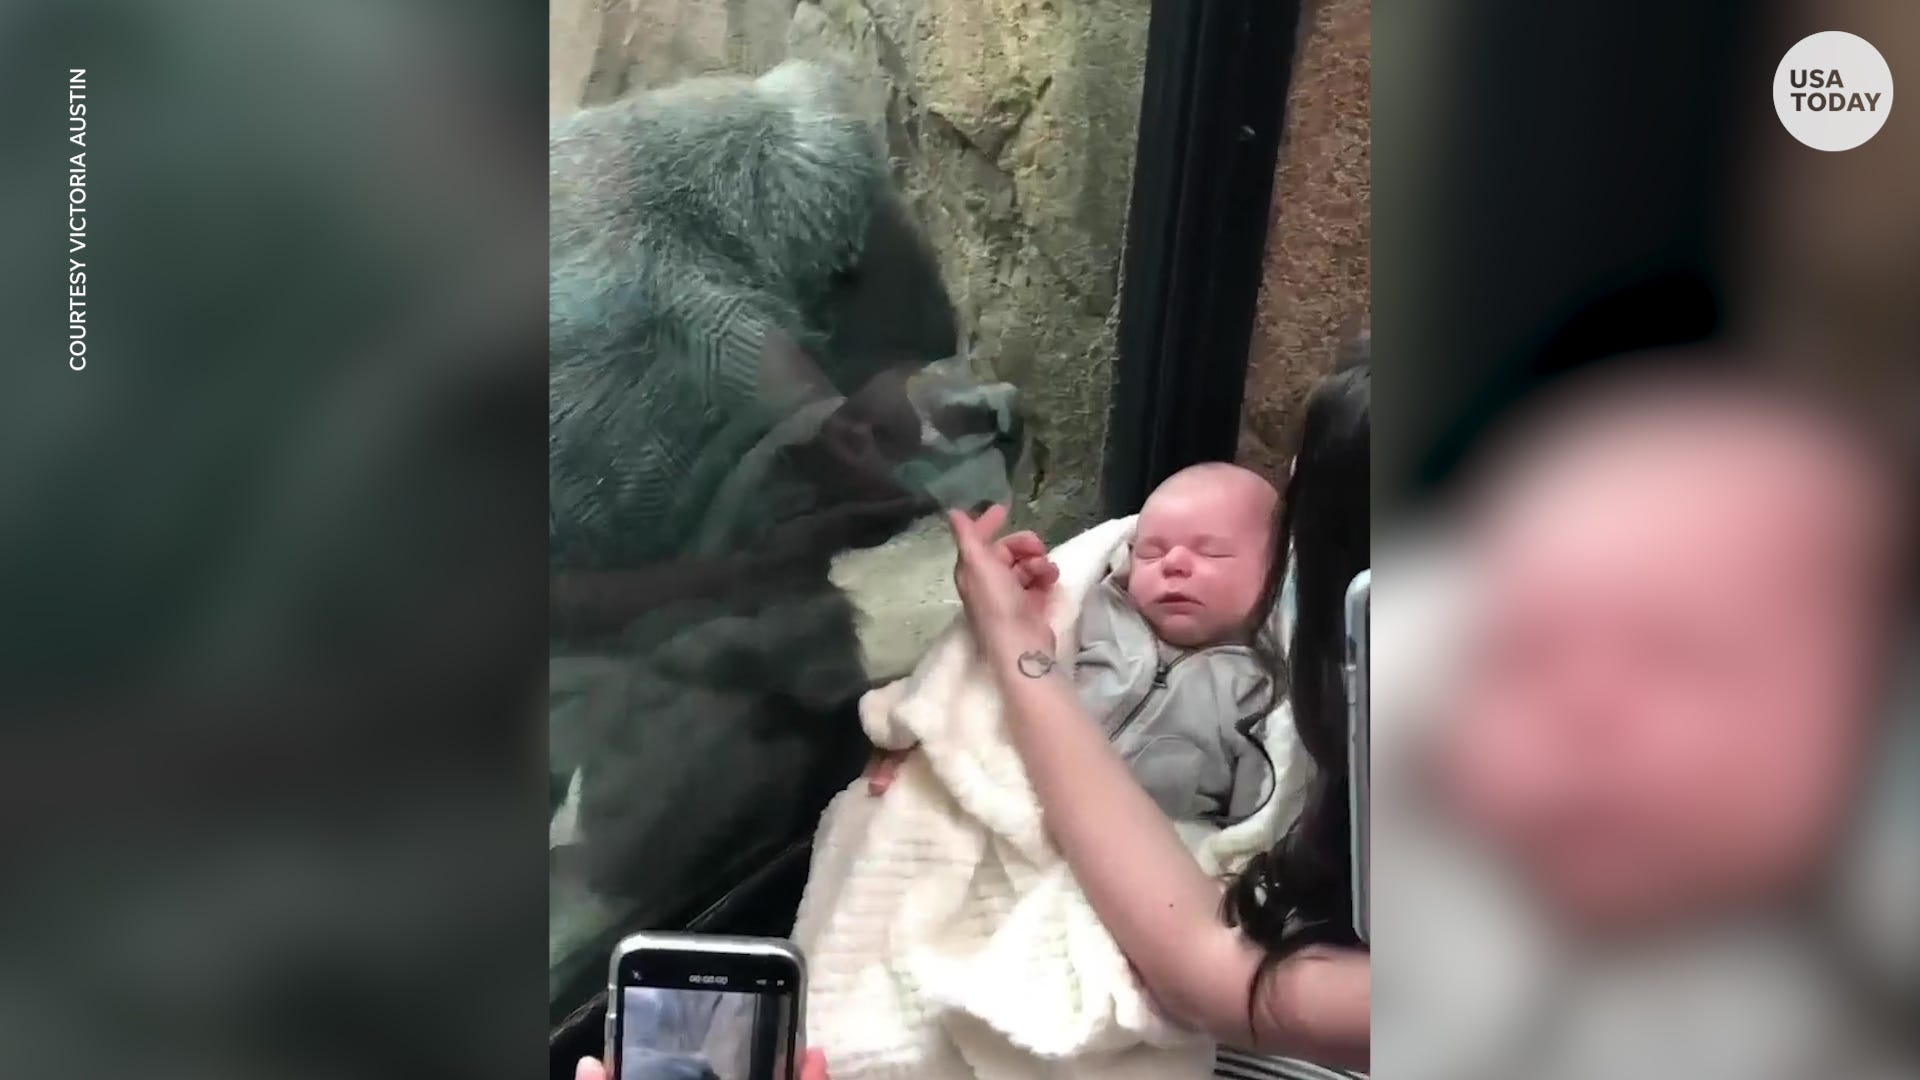 Mother and gorilla share unique bond over newborn babies